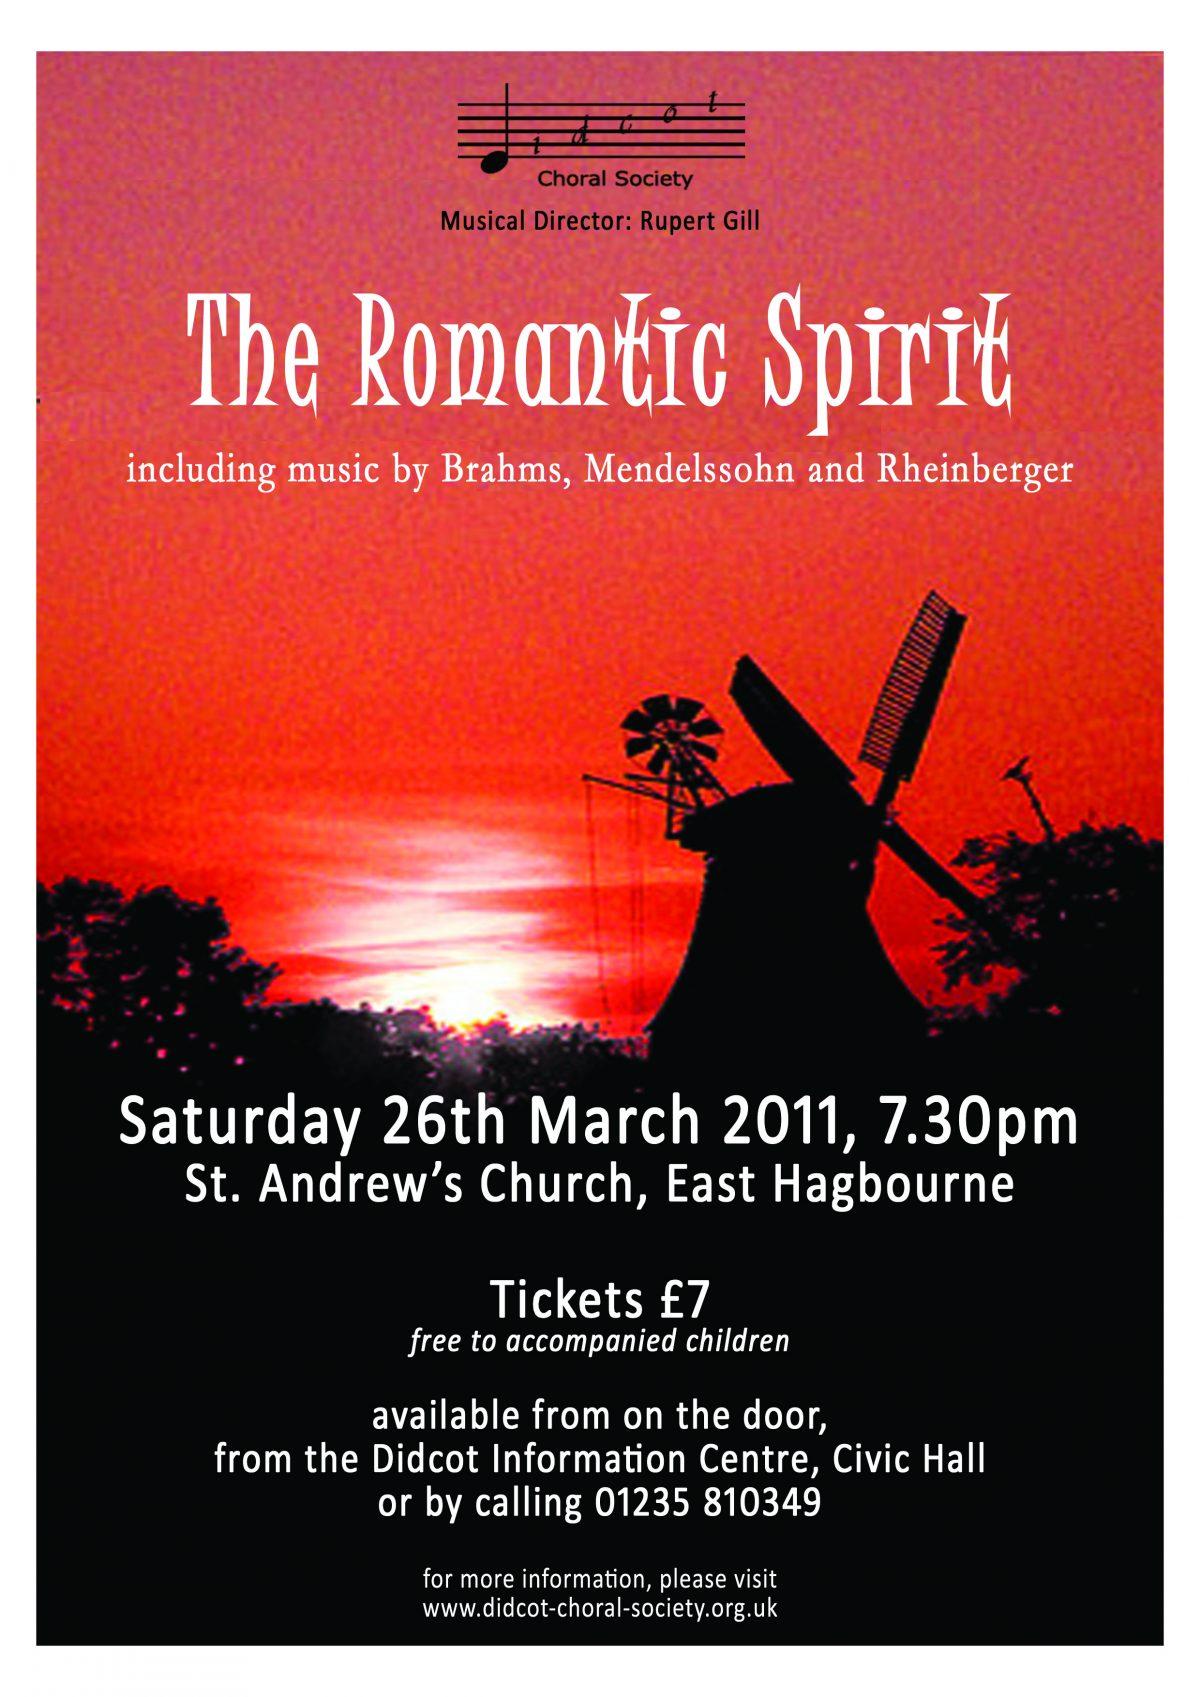 The Romantic Spirit March 2011